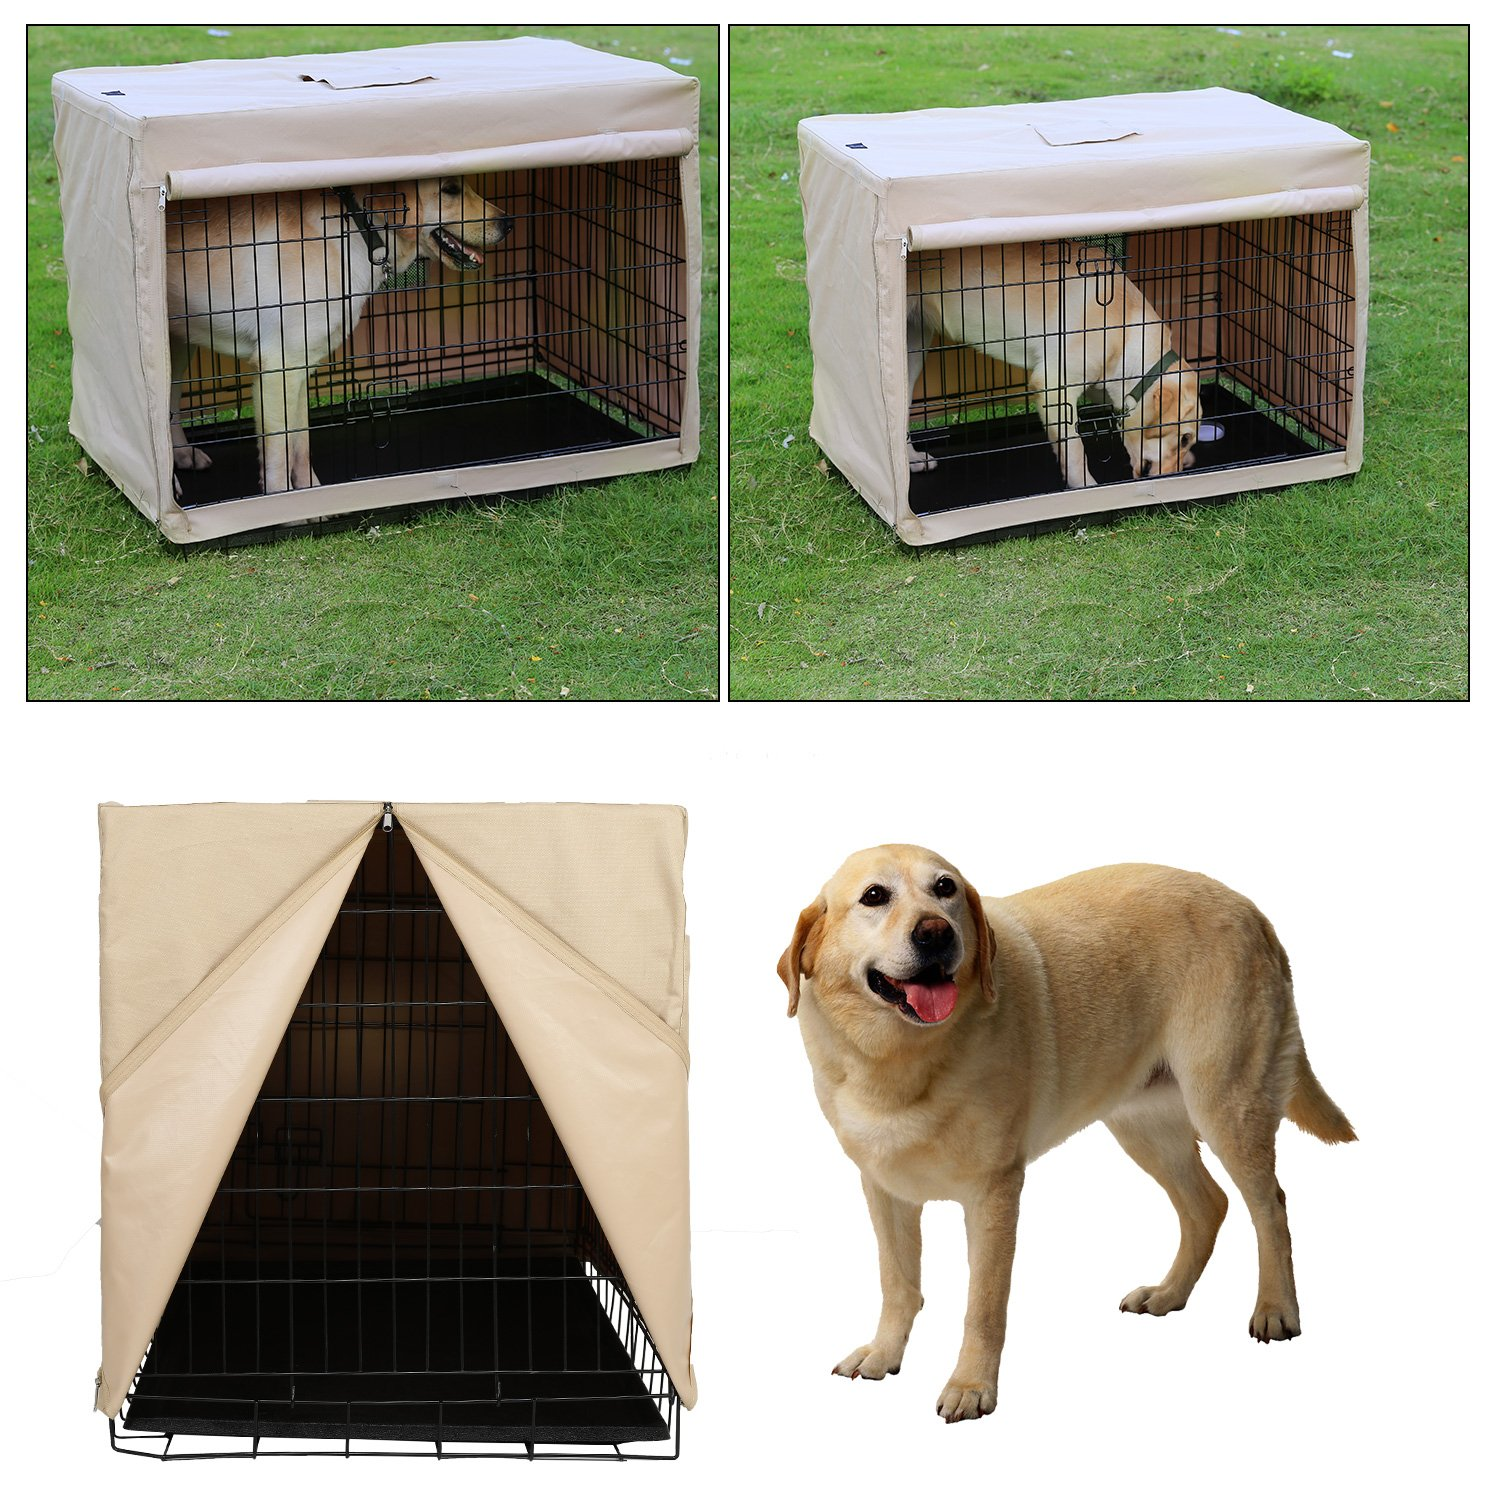 X-ZONE PET Indoor/Outdoor Dog Crate Cover, Polyester Crate Cover or Durable Windproof Kennel Covers for Wire dog Crates (30-Inch) by X-ZONE PET (Image #6)